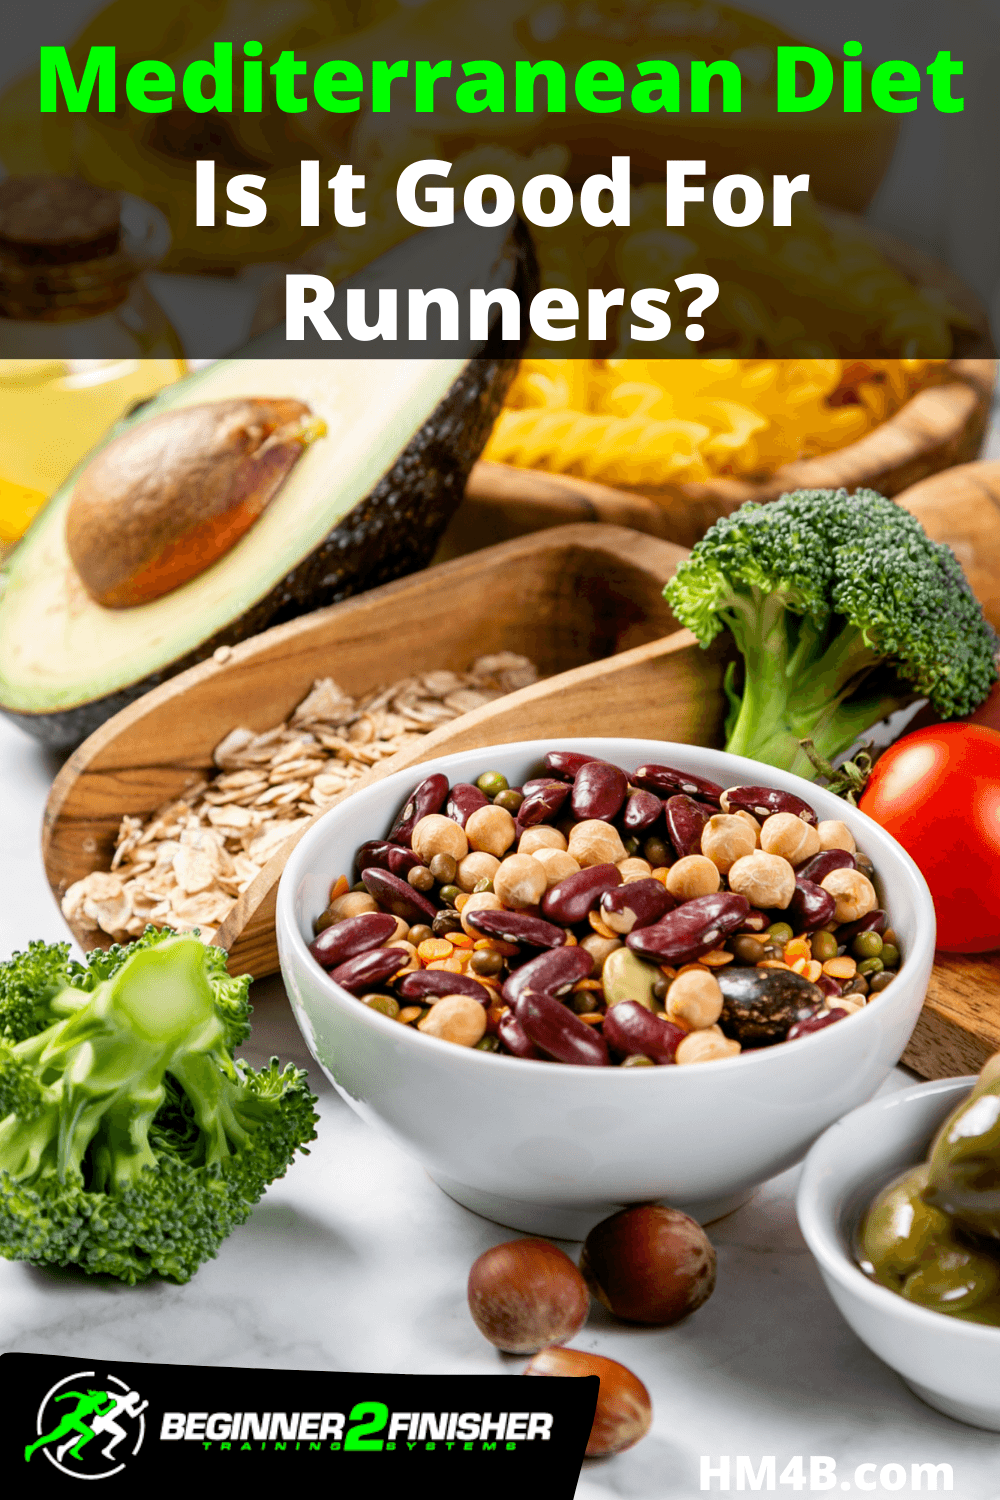 What Is The Mediterranean Diet - Is It Good For Runners?